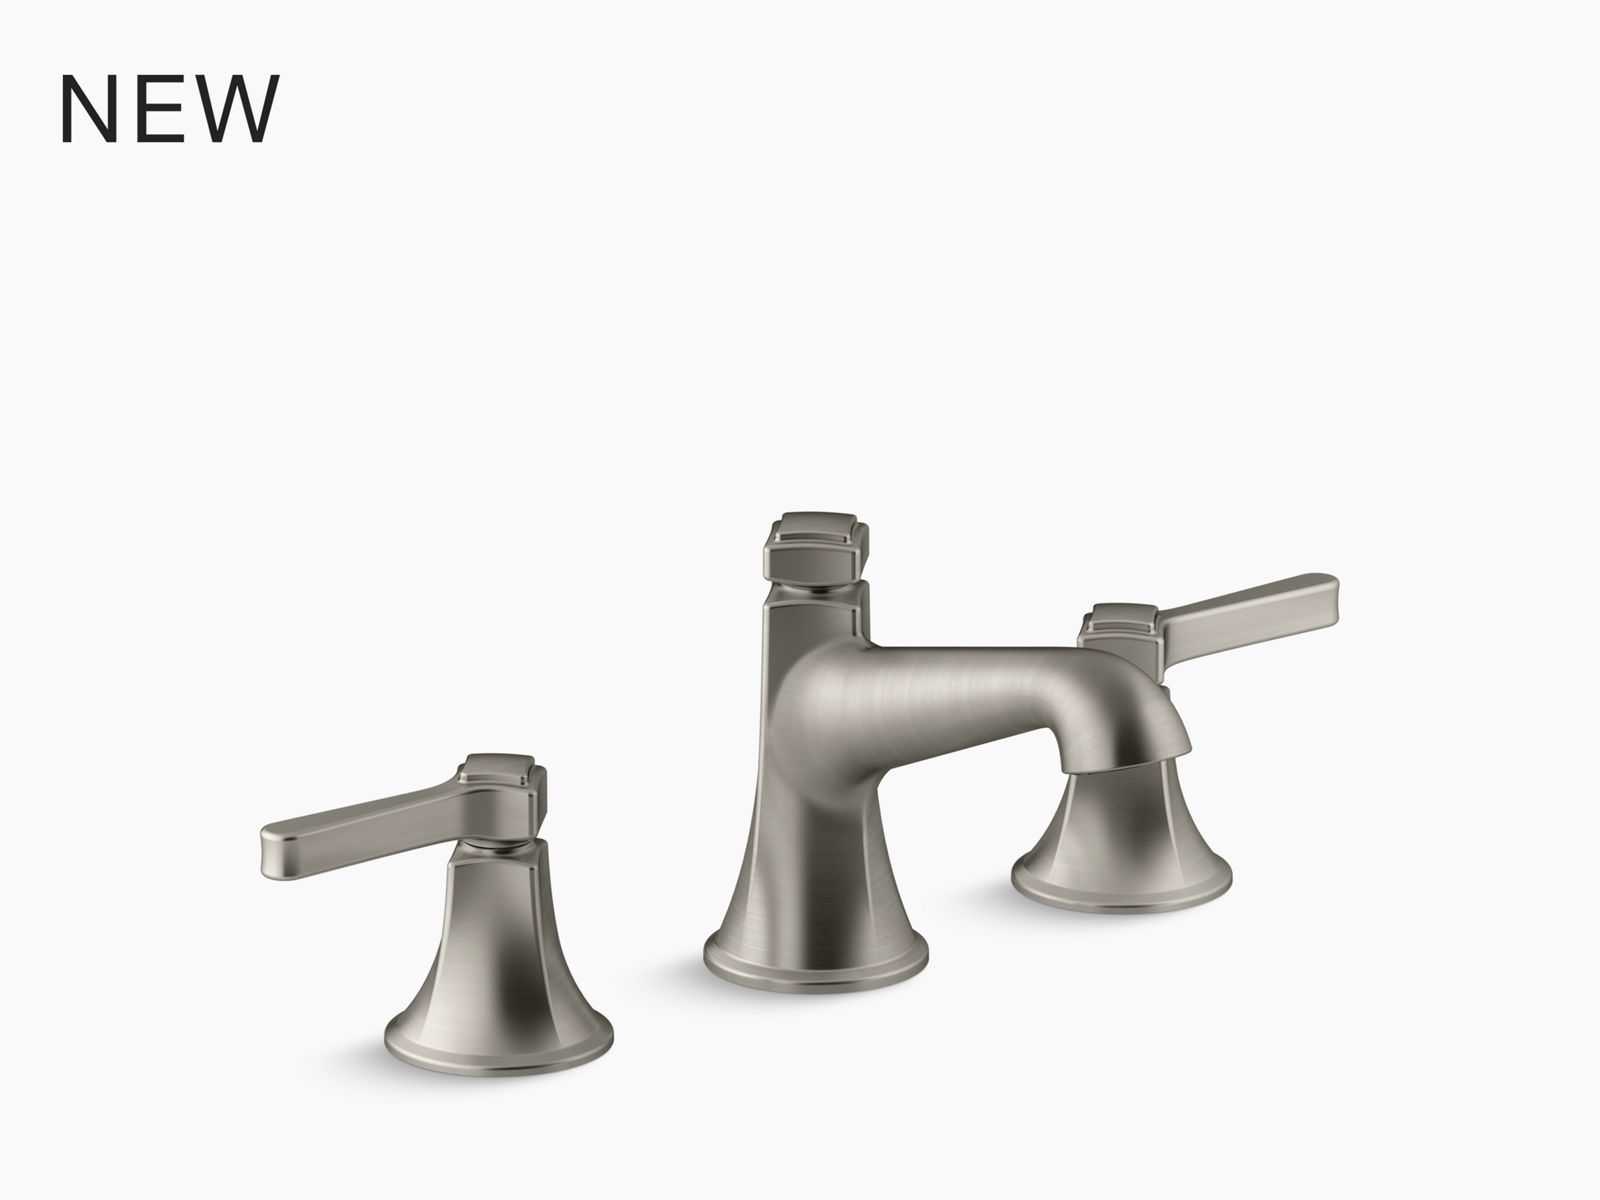 purist widespread wall mount bathroom sink faucet trim with 6 1 4 spout and cross handles requires valve